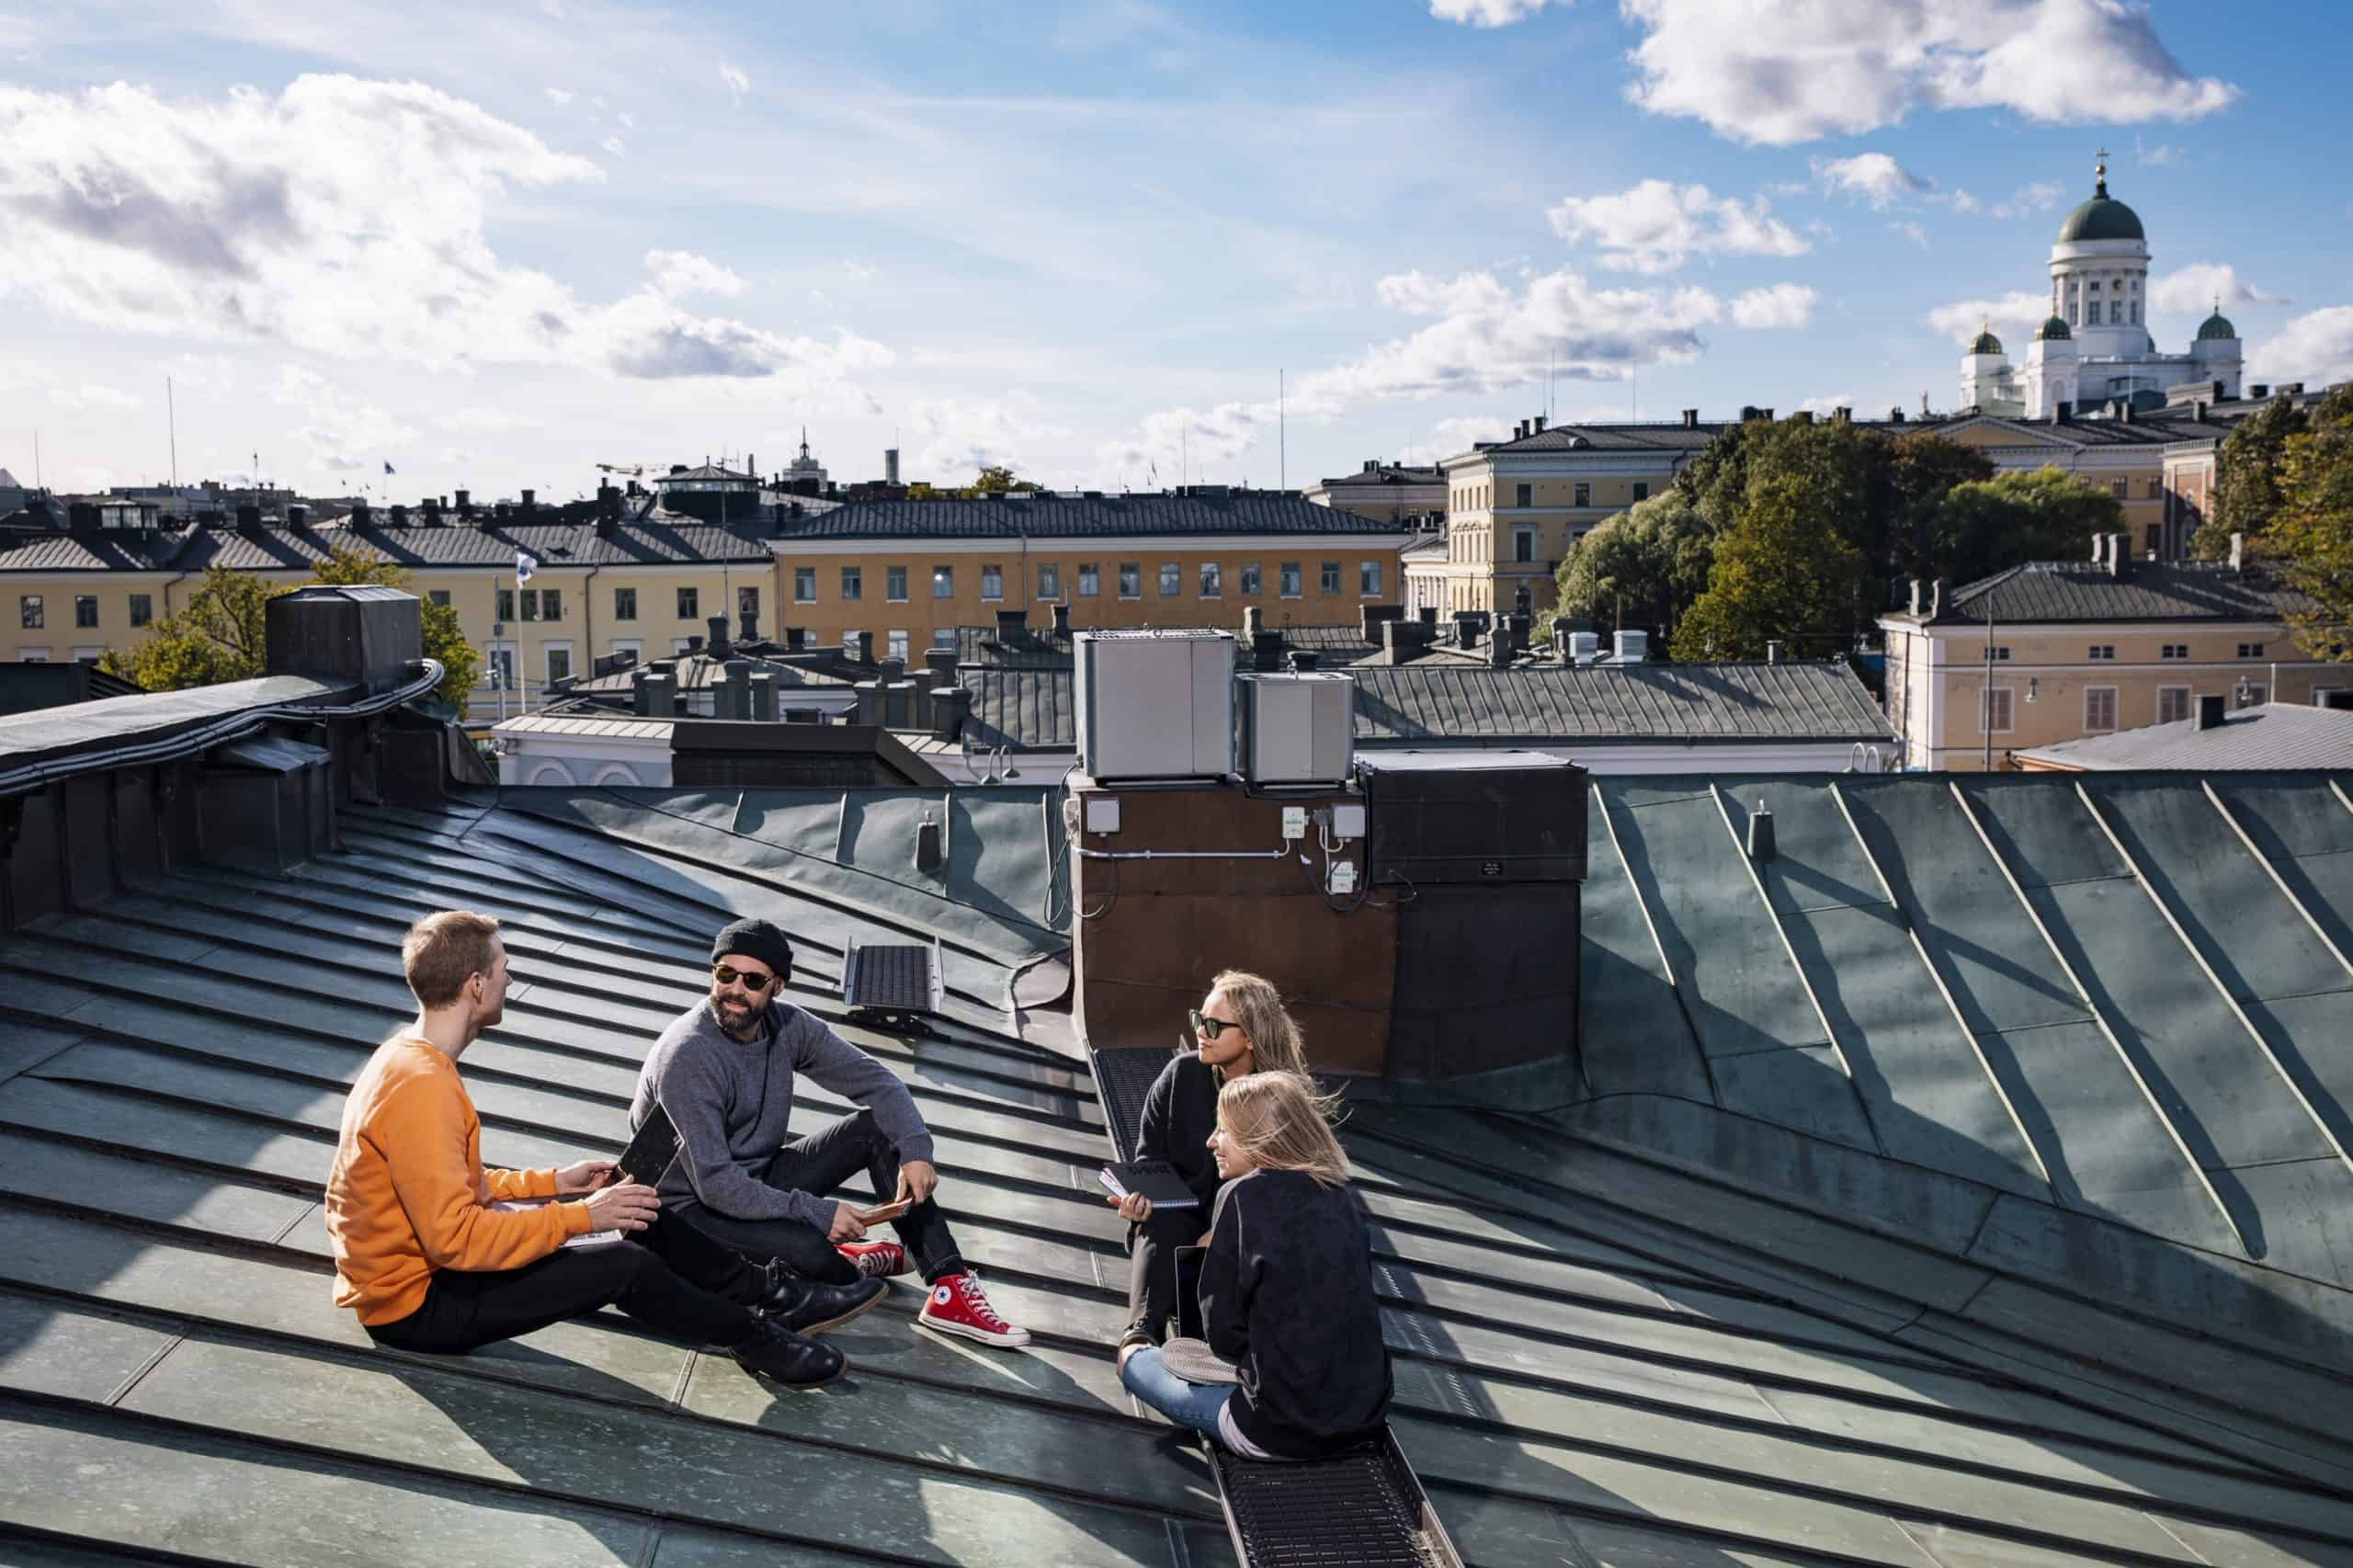 Four people are sitting on a roof.